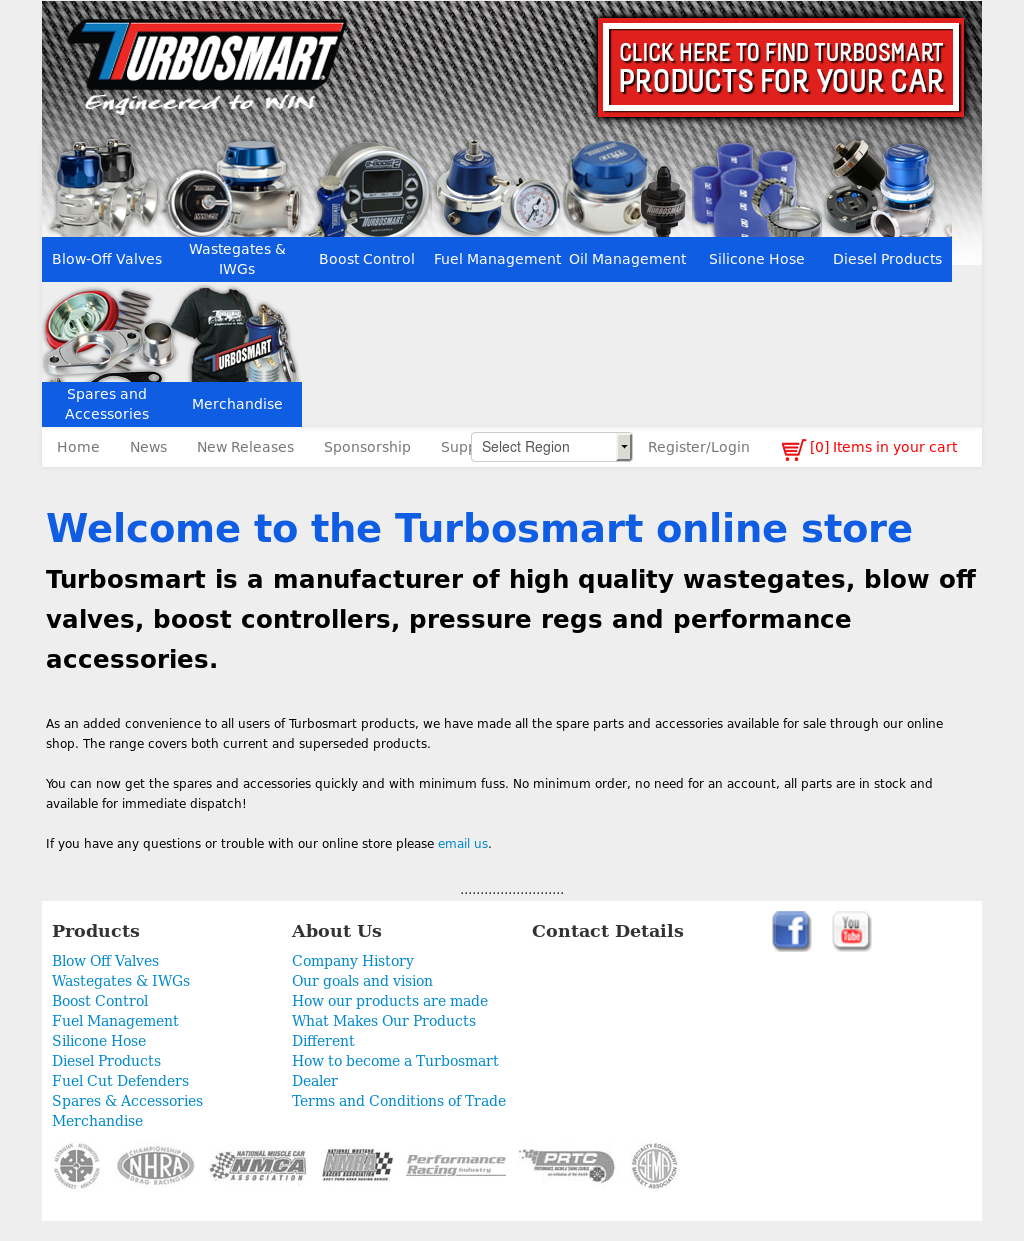 Turbosmart Usa Competitors, Revenue and Employees - Owler